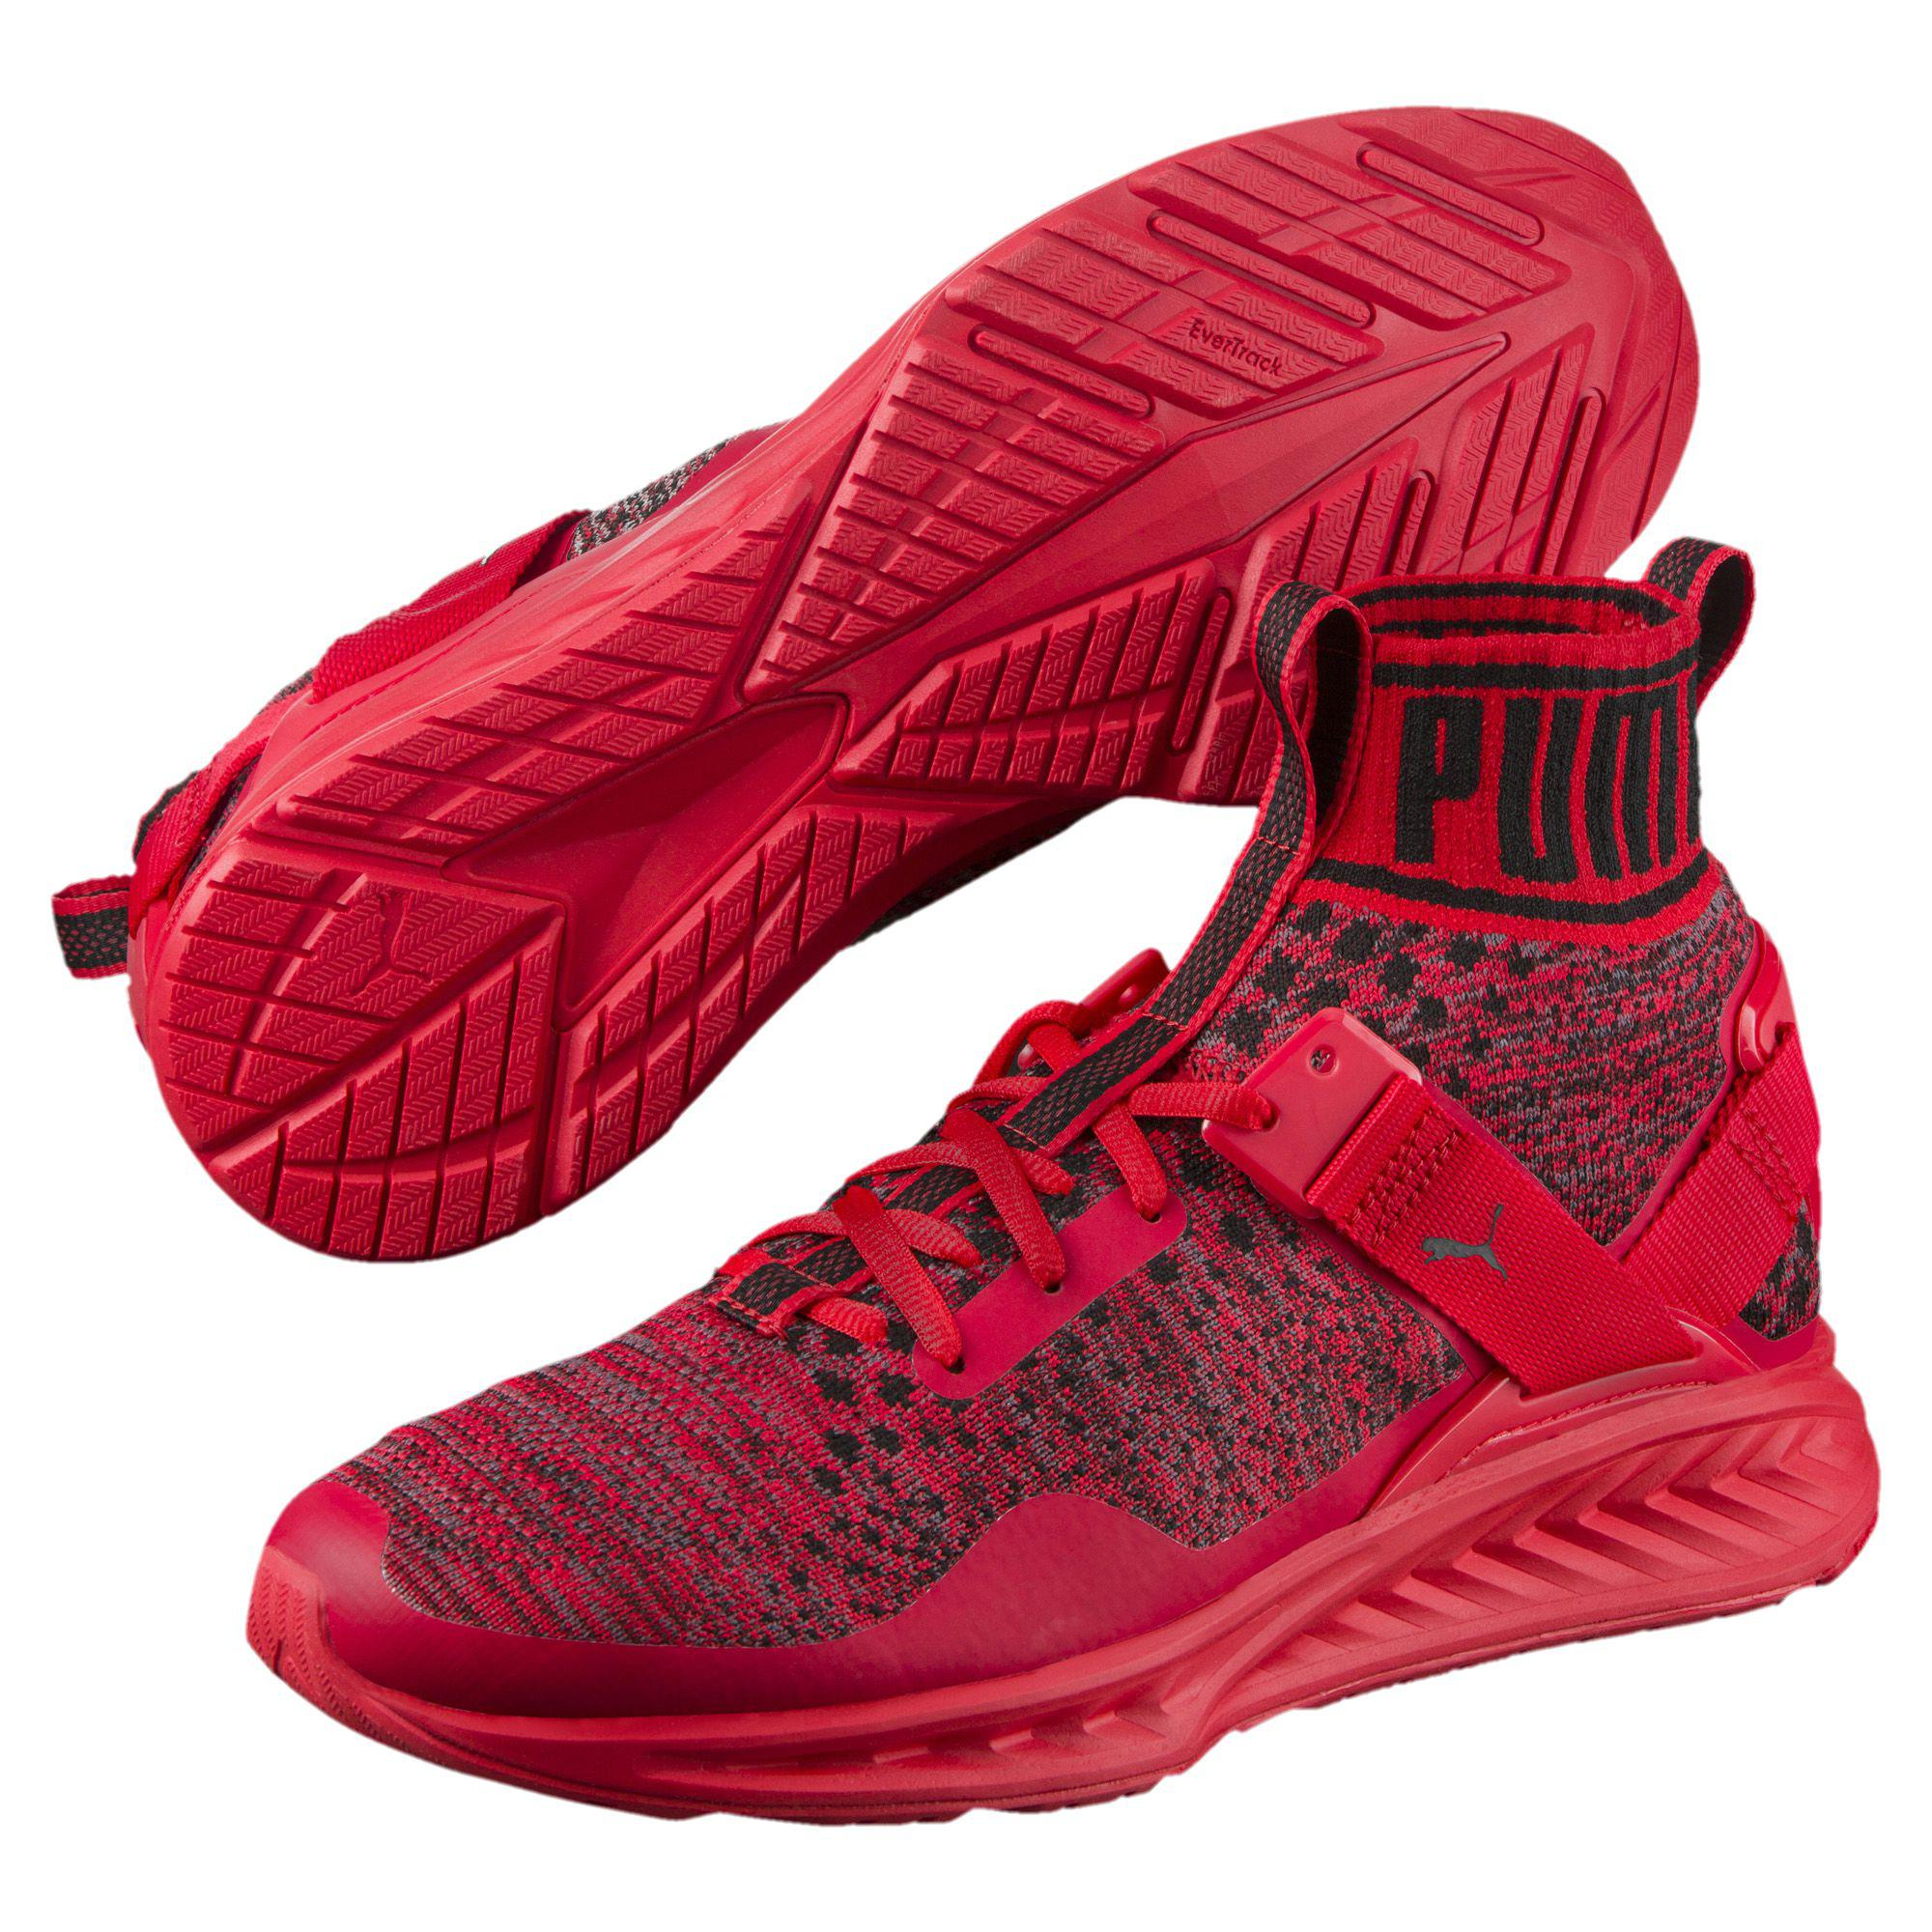 a1762c7caba Lyst - PUMA Ignite Evoknit Men s Training Shoes in Red for Men